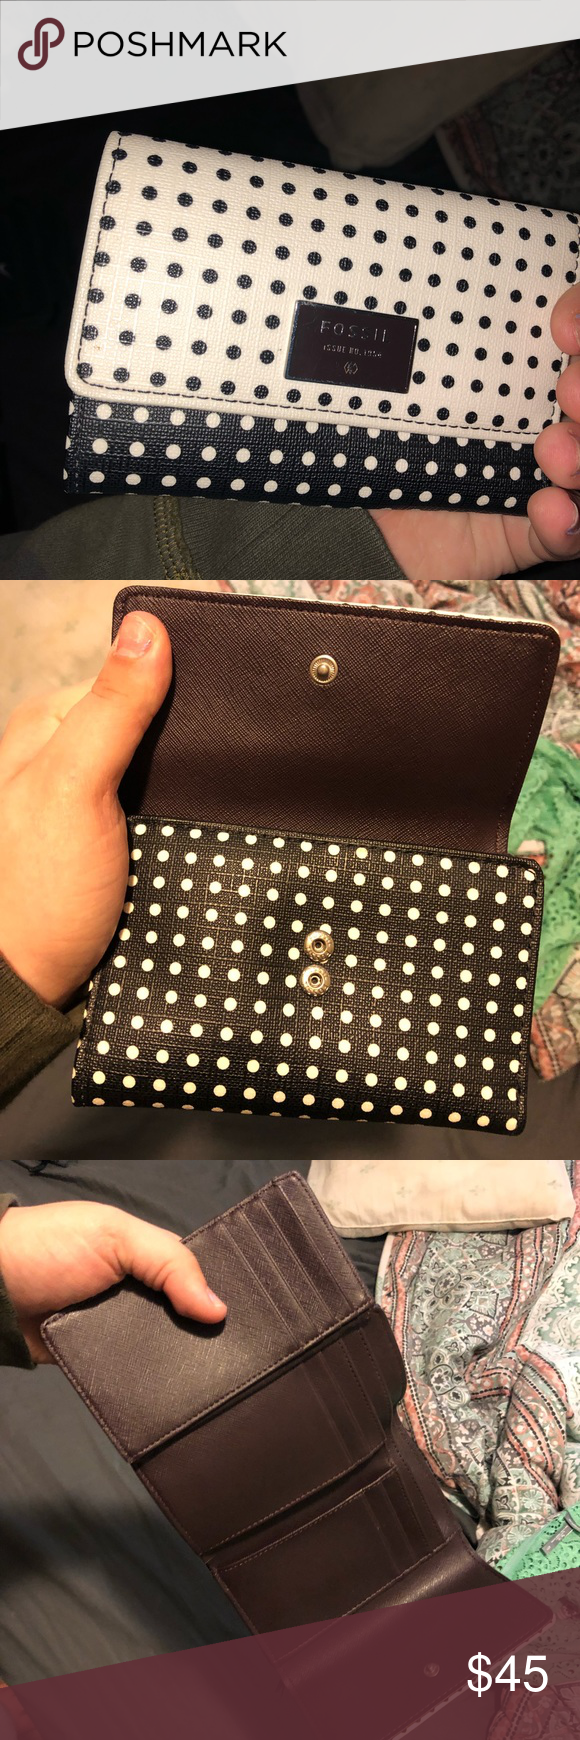 Fossil brand polka dot wallet This wallet is so unique! It's got one side black and white polka dots and the other side white with black polka dots. The inside is dark brown. So many card holders . Wallet is in amazing condition only used a couple times Fossil Bags Wallets